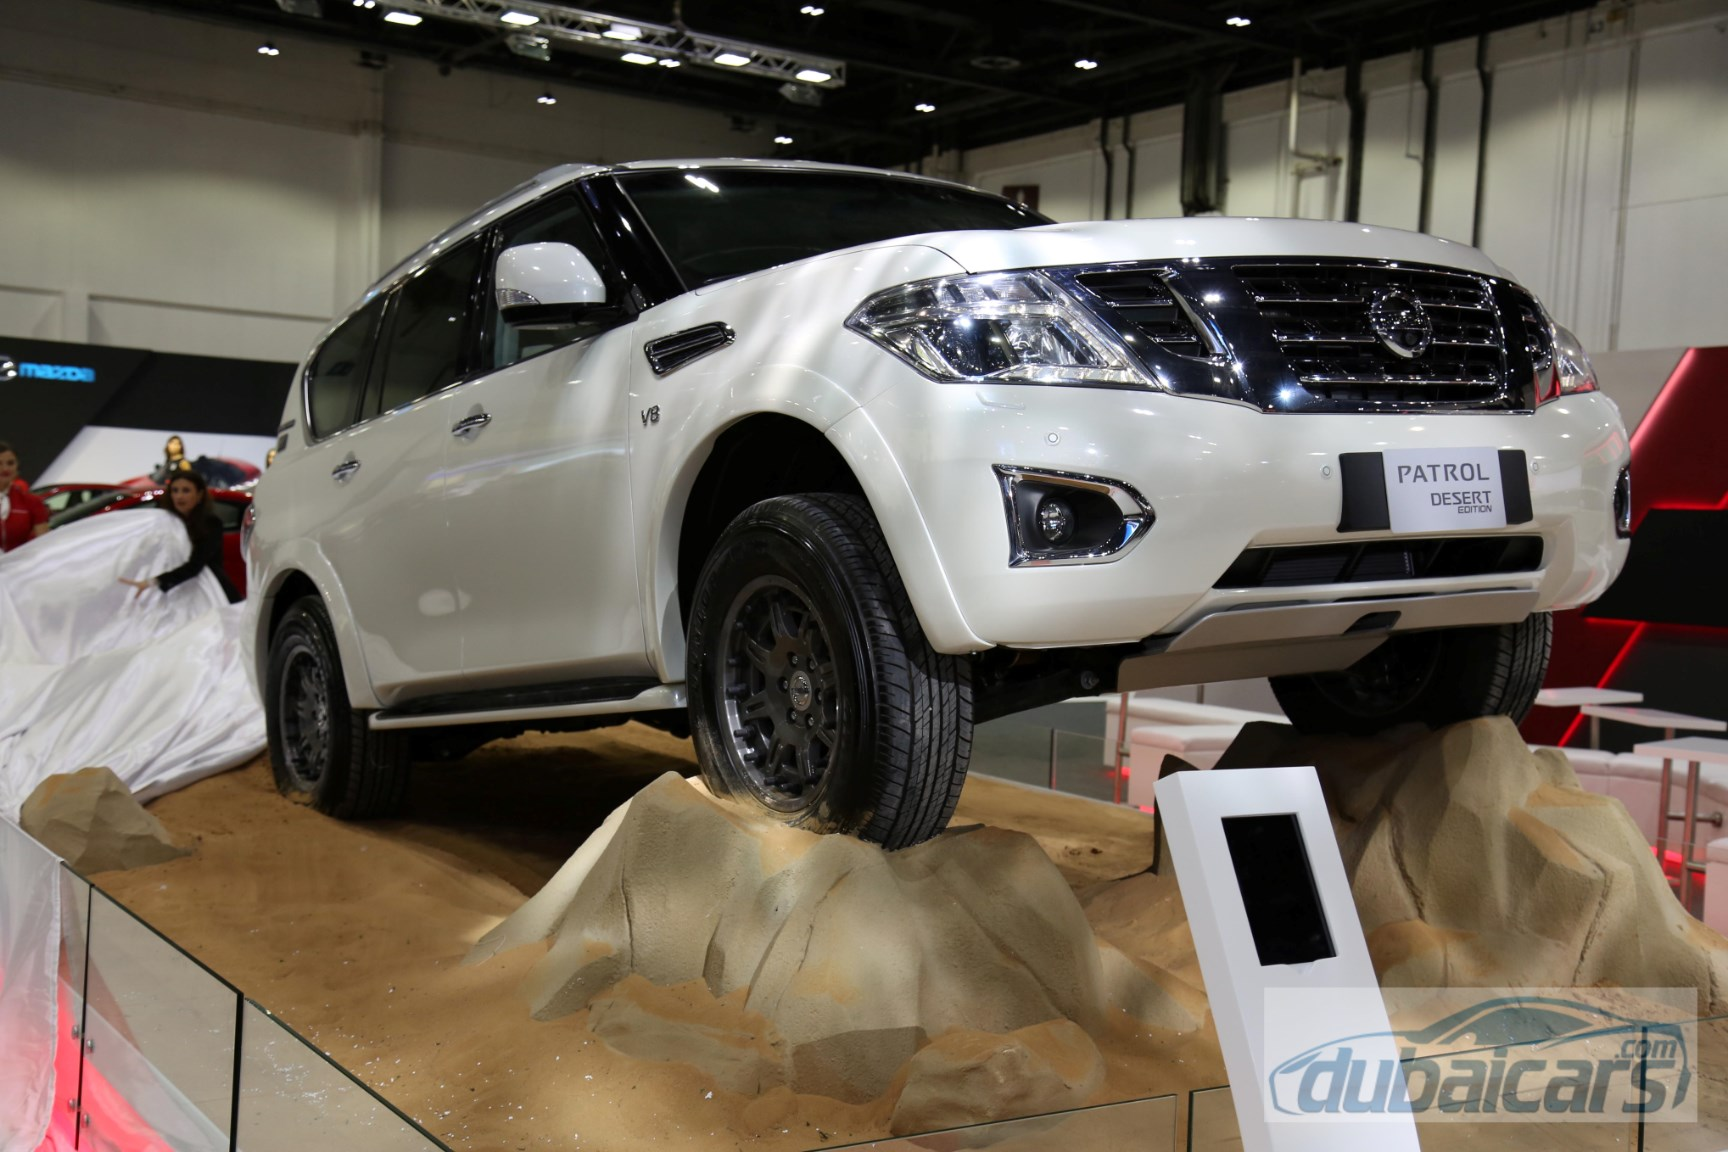 Nissan Patrol Desert Suv Launched At Dubai Motor Show 2015